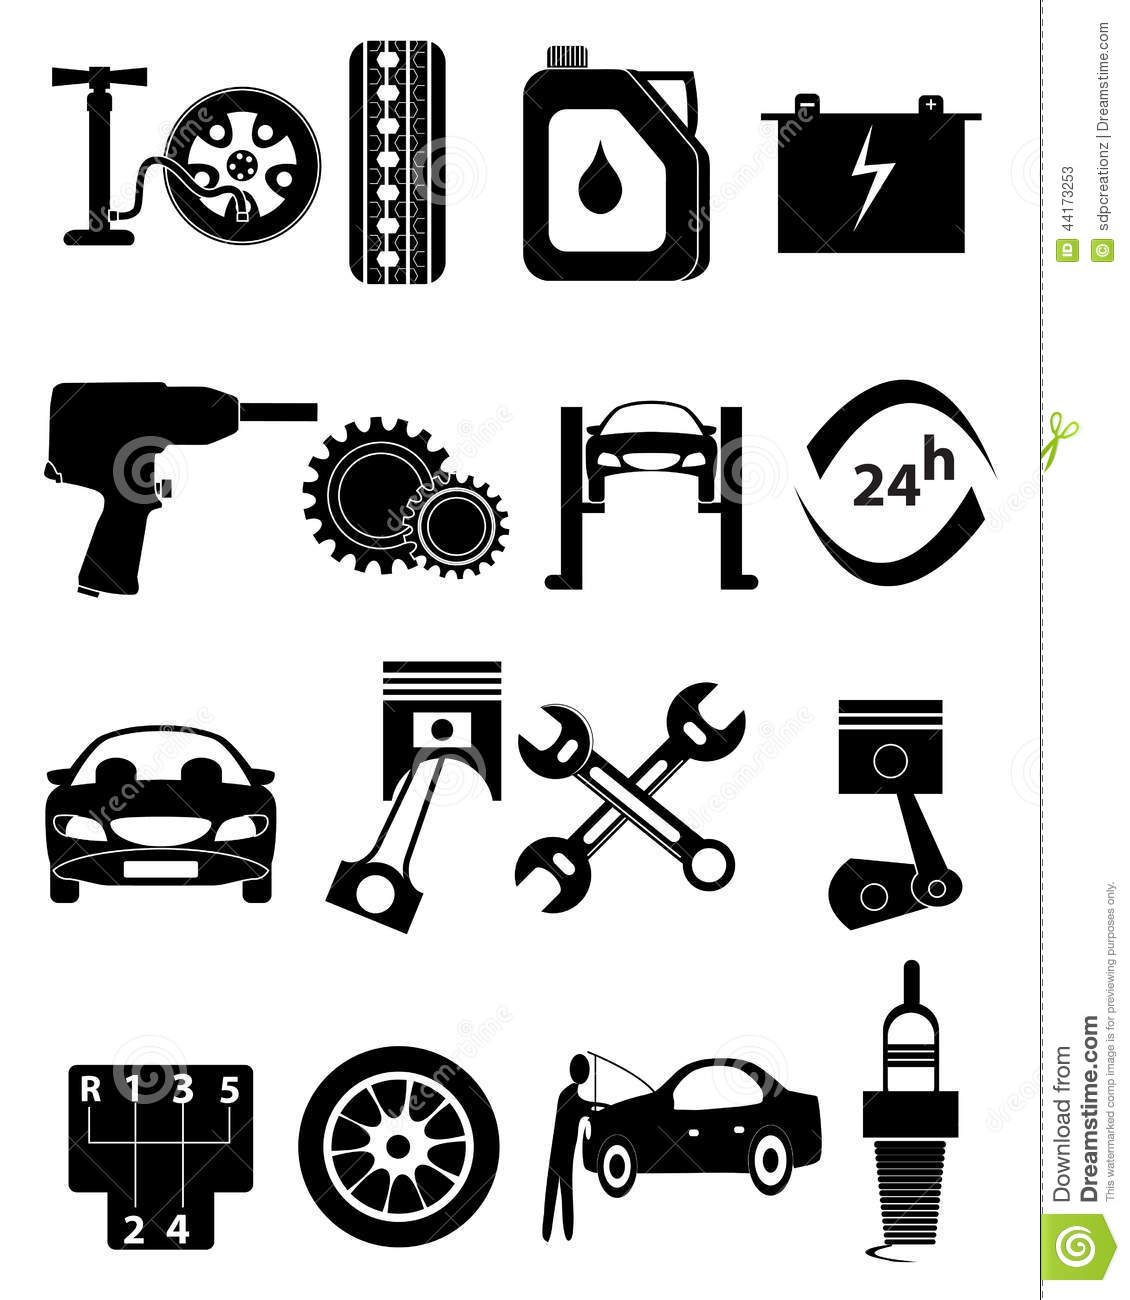 Nakleyka Uli a Turbo in addition 151732923914 also Free Race Car Icons Vector 400785 furthermore Icons Garage Car Repair besides Cowboy Boots And Cowboy Hat Drawing Hd. on turbocharger cartoon